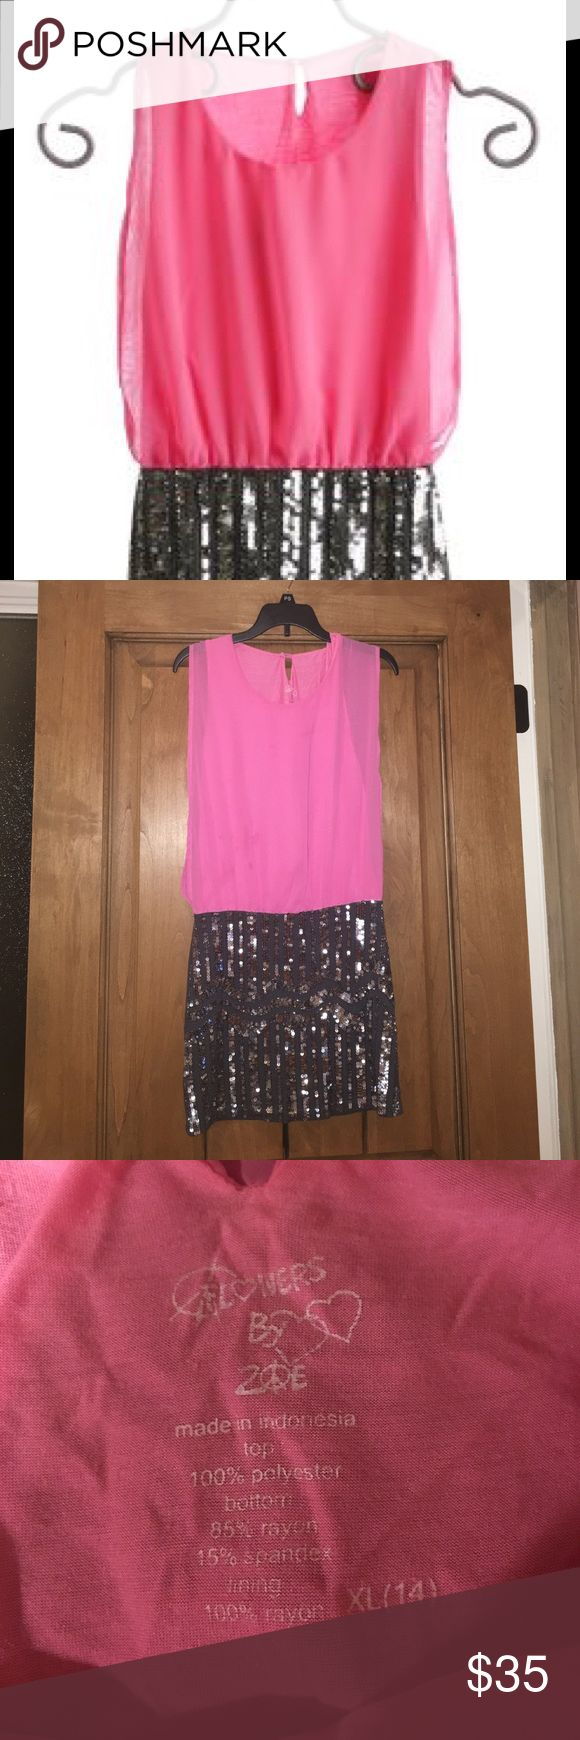 Girls special occasion dress Pink and silver. Bottom part is beautiful sequin. Top is chiffon. Size XL/ 14, fits a little small. Very good condition. Flowers by Zoe Dresses Midi